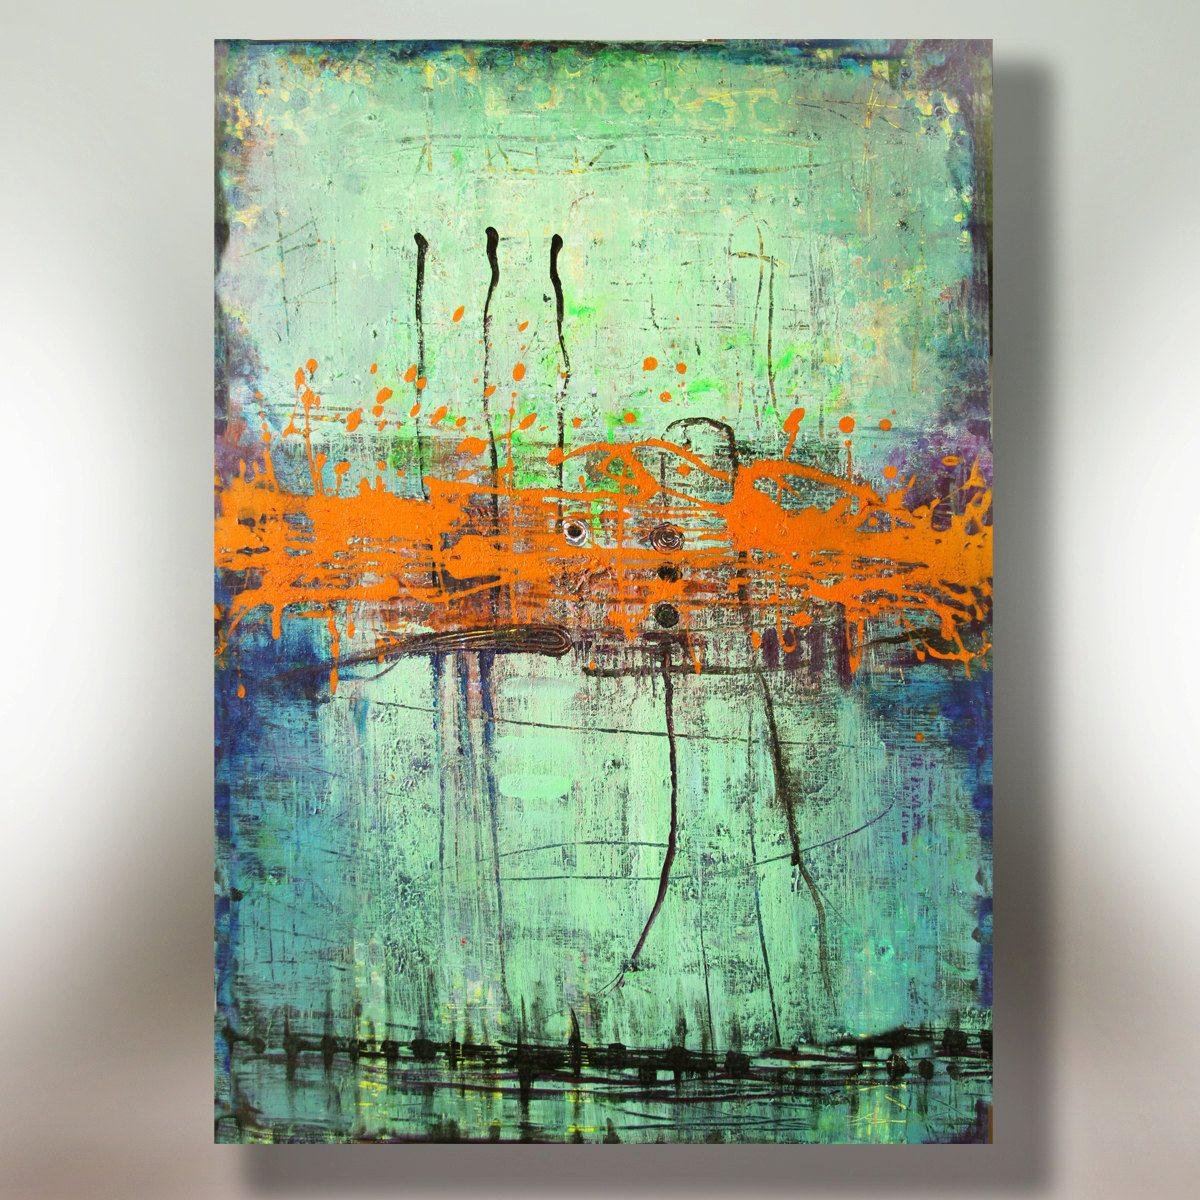 Art painting canvas painting original abstract painting on canvas